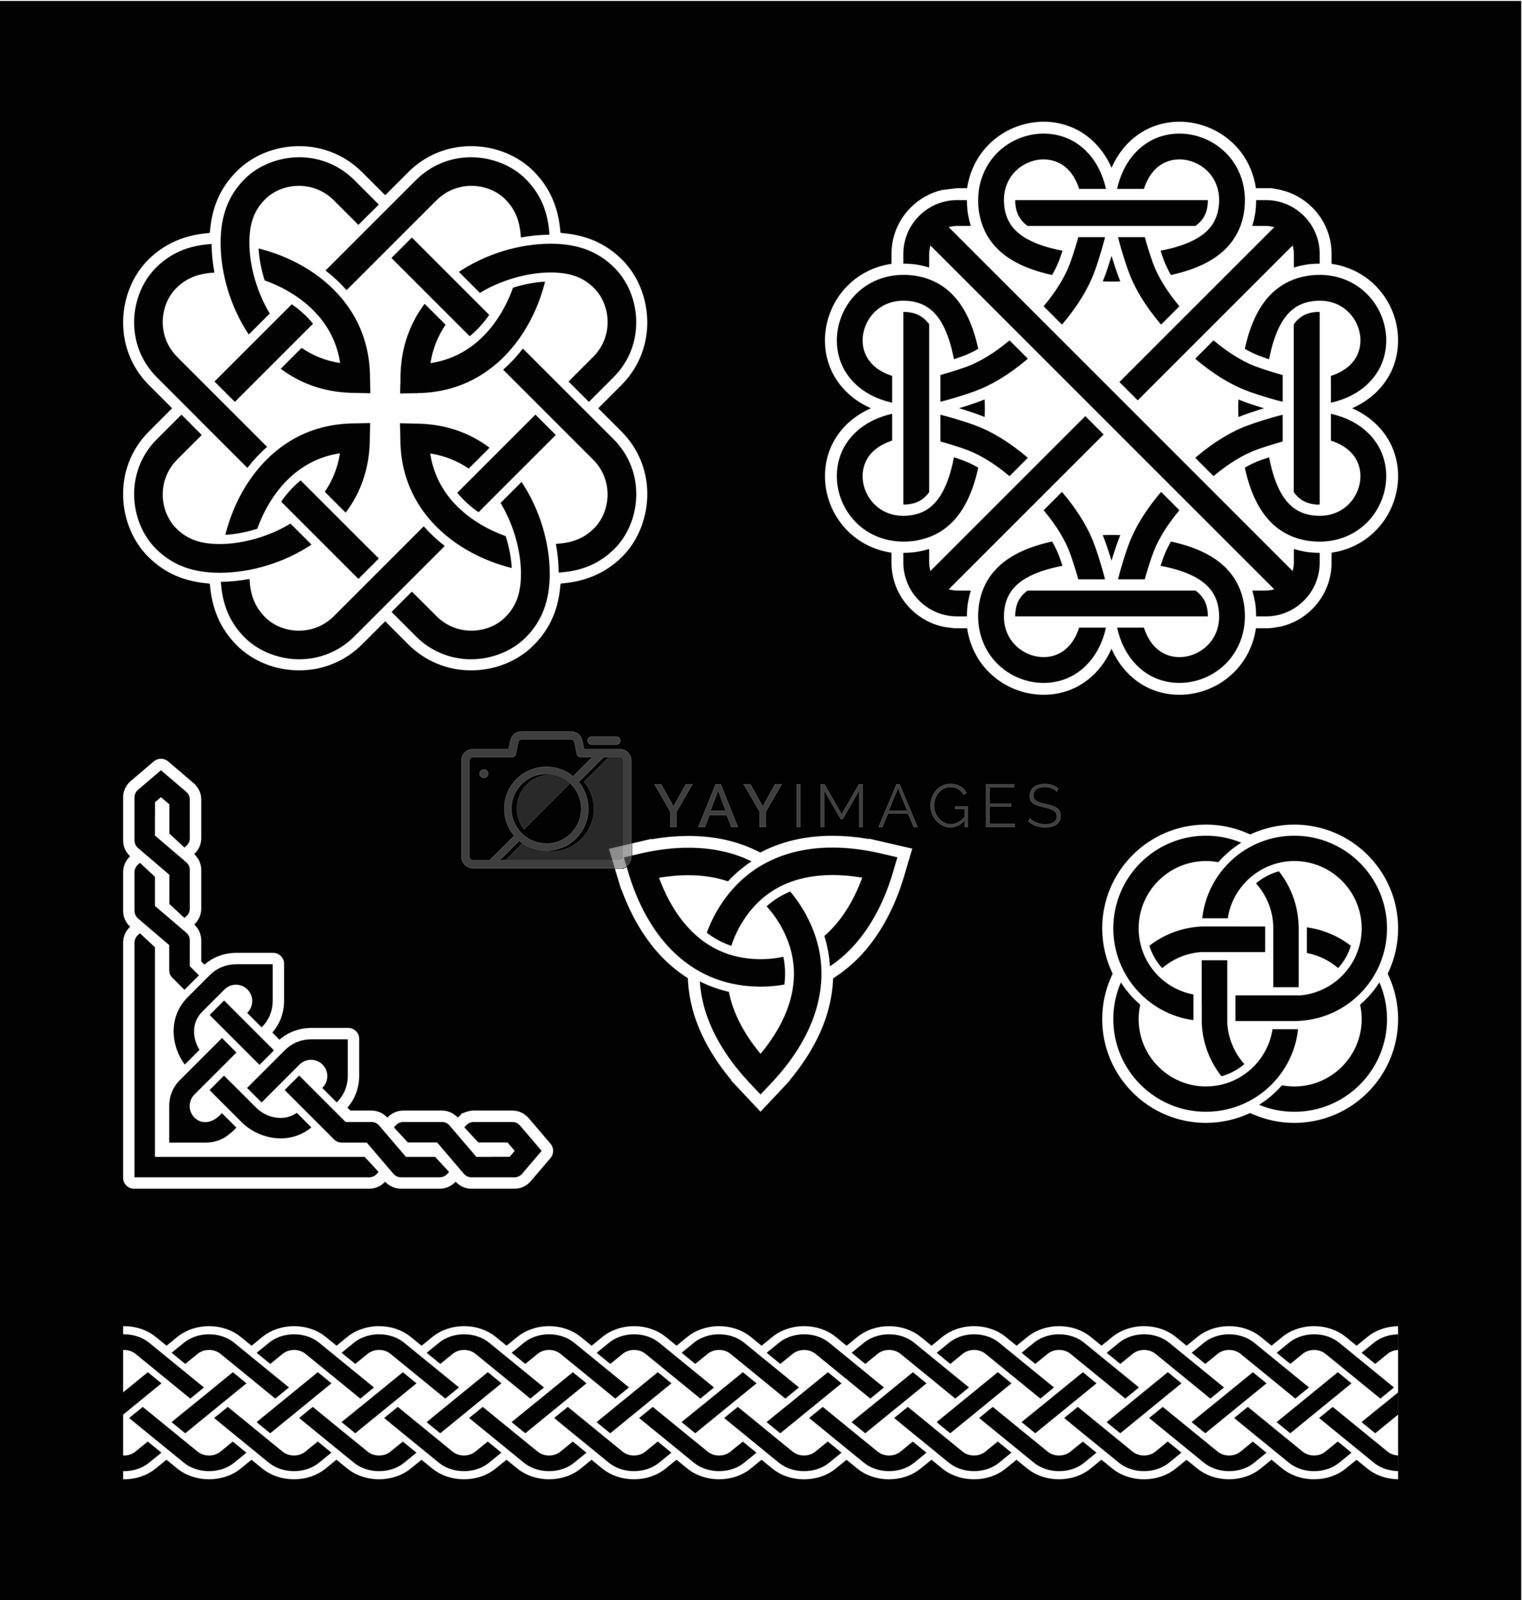 Celtic Knots Patterns In White On Black Background Royalty Free Stock Image Stock Photos Royalty Free Images Vectors Footage Yayimages